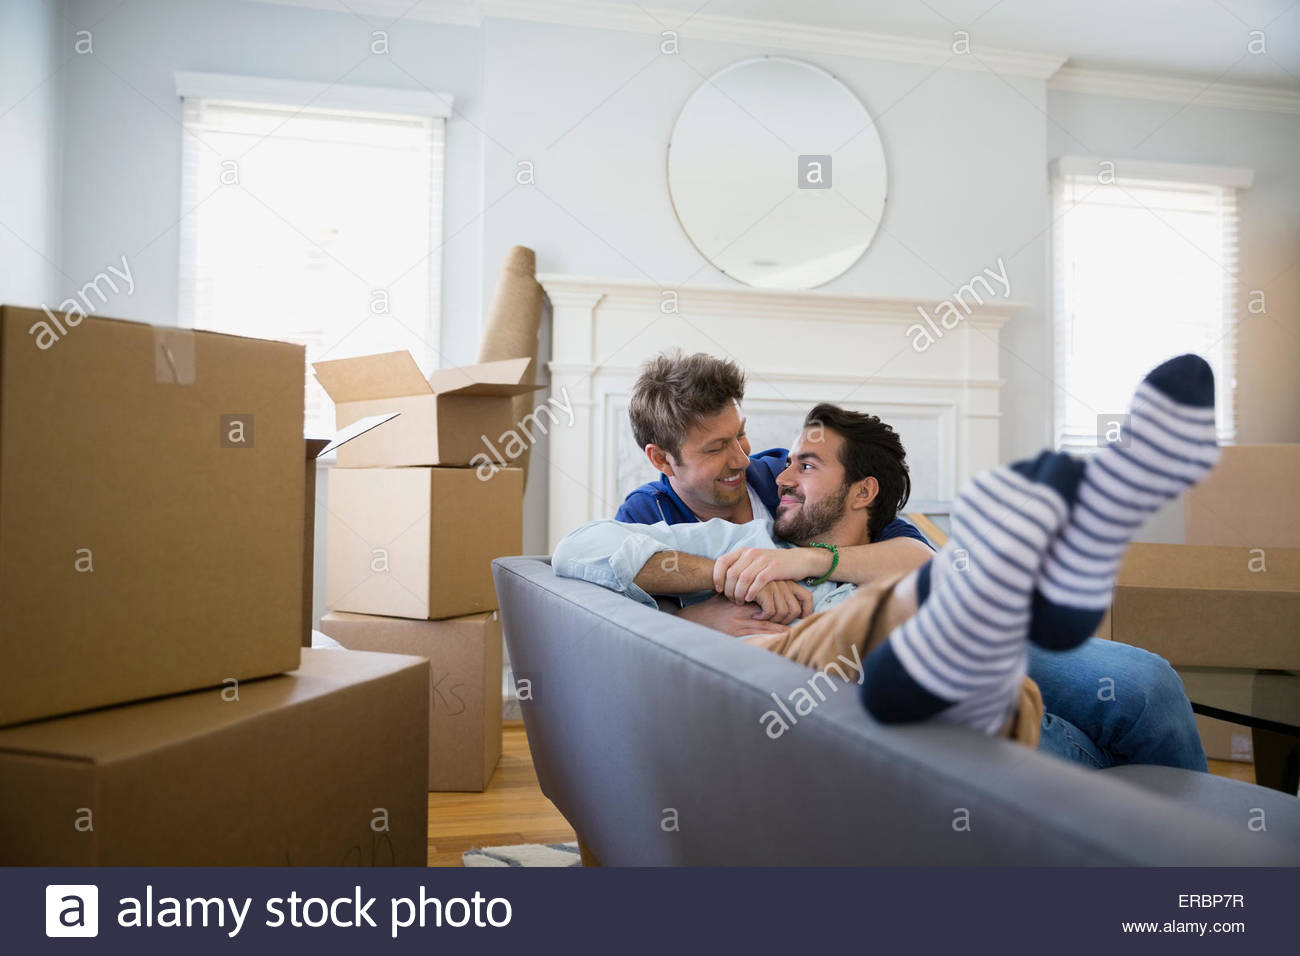 Affectionate homosexual couple relaxing sofa among moving boxes - Stock Image